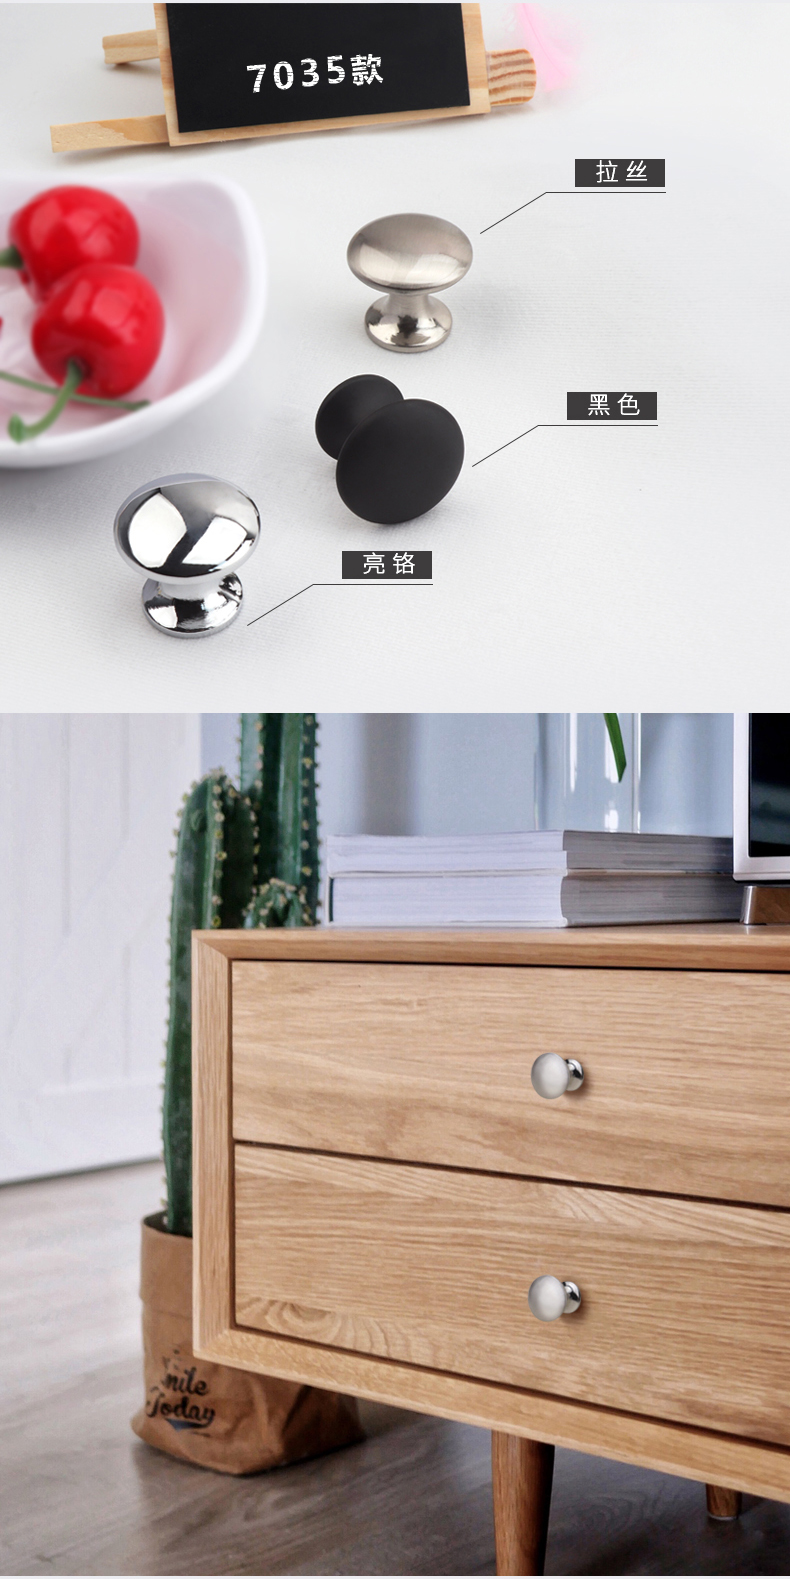 HTB1p68AXeL2gK0jSZPhq6yhvXXaV - WV Modern Silver Matte Black Cabinets Closet Door Handles American Drawer Handle Simple Knobs Shoe Wine Cabinet Pulls Hardware